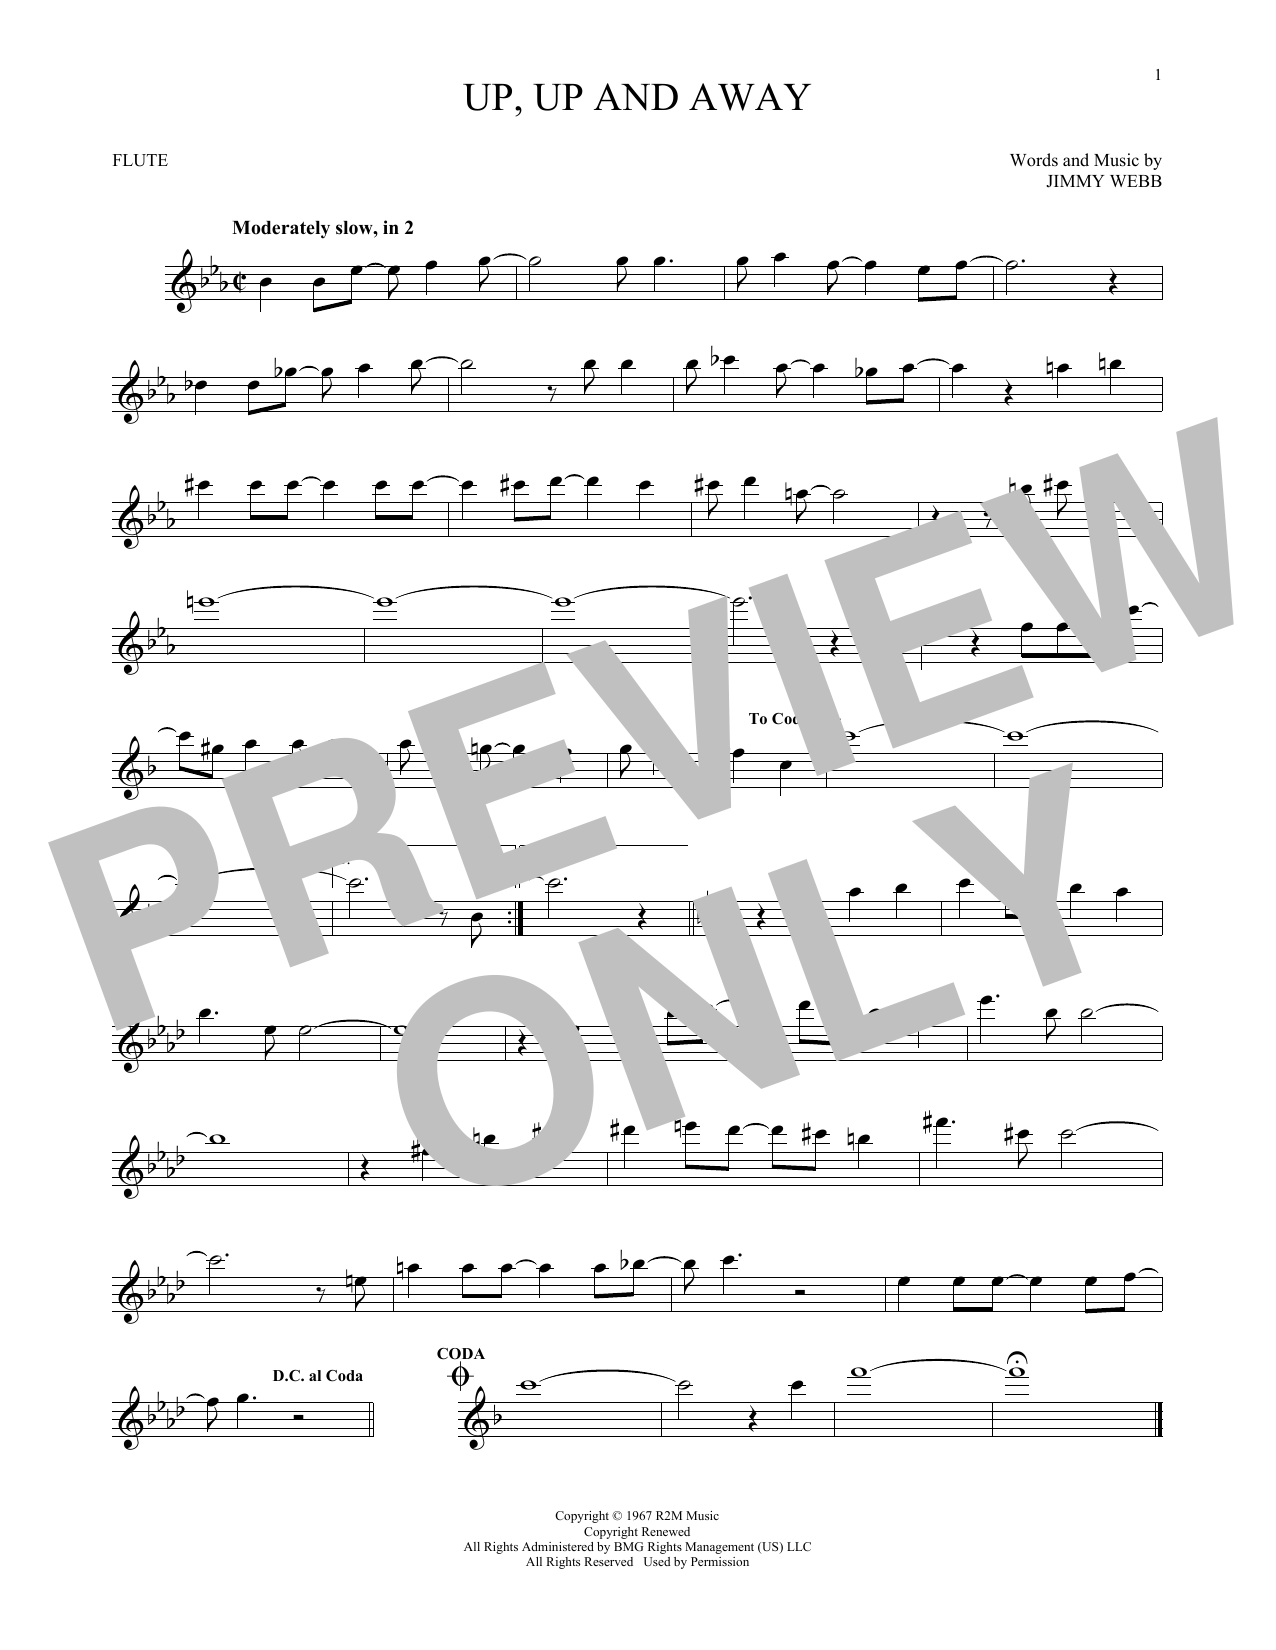 Up, Up And Away (Flute Solo)